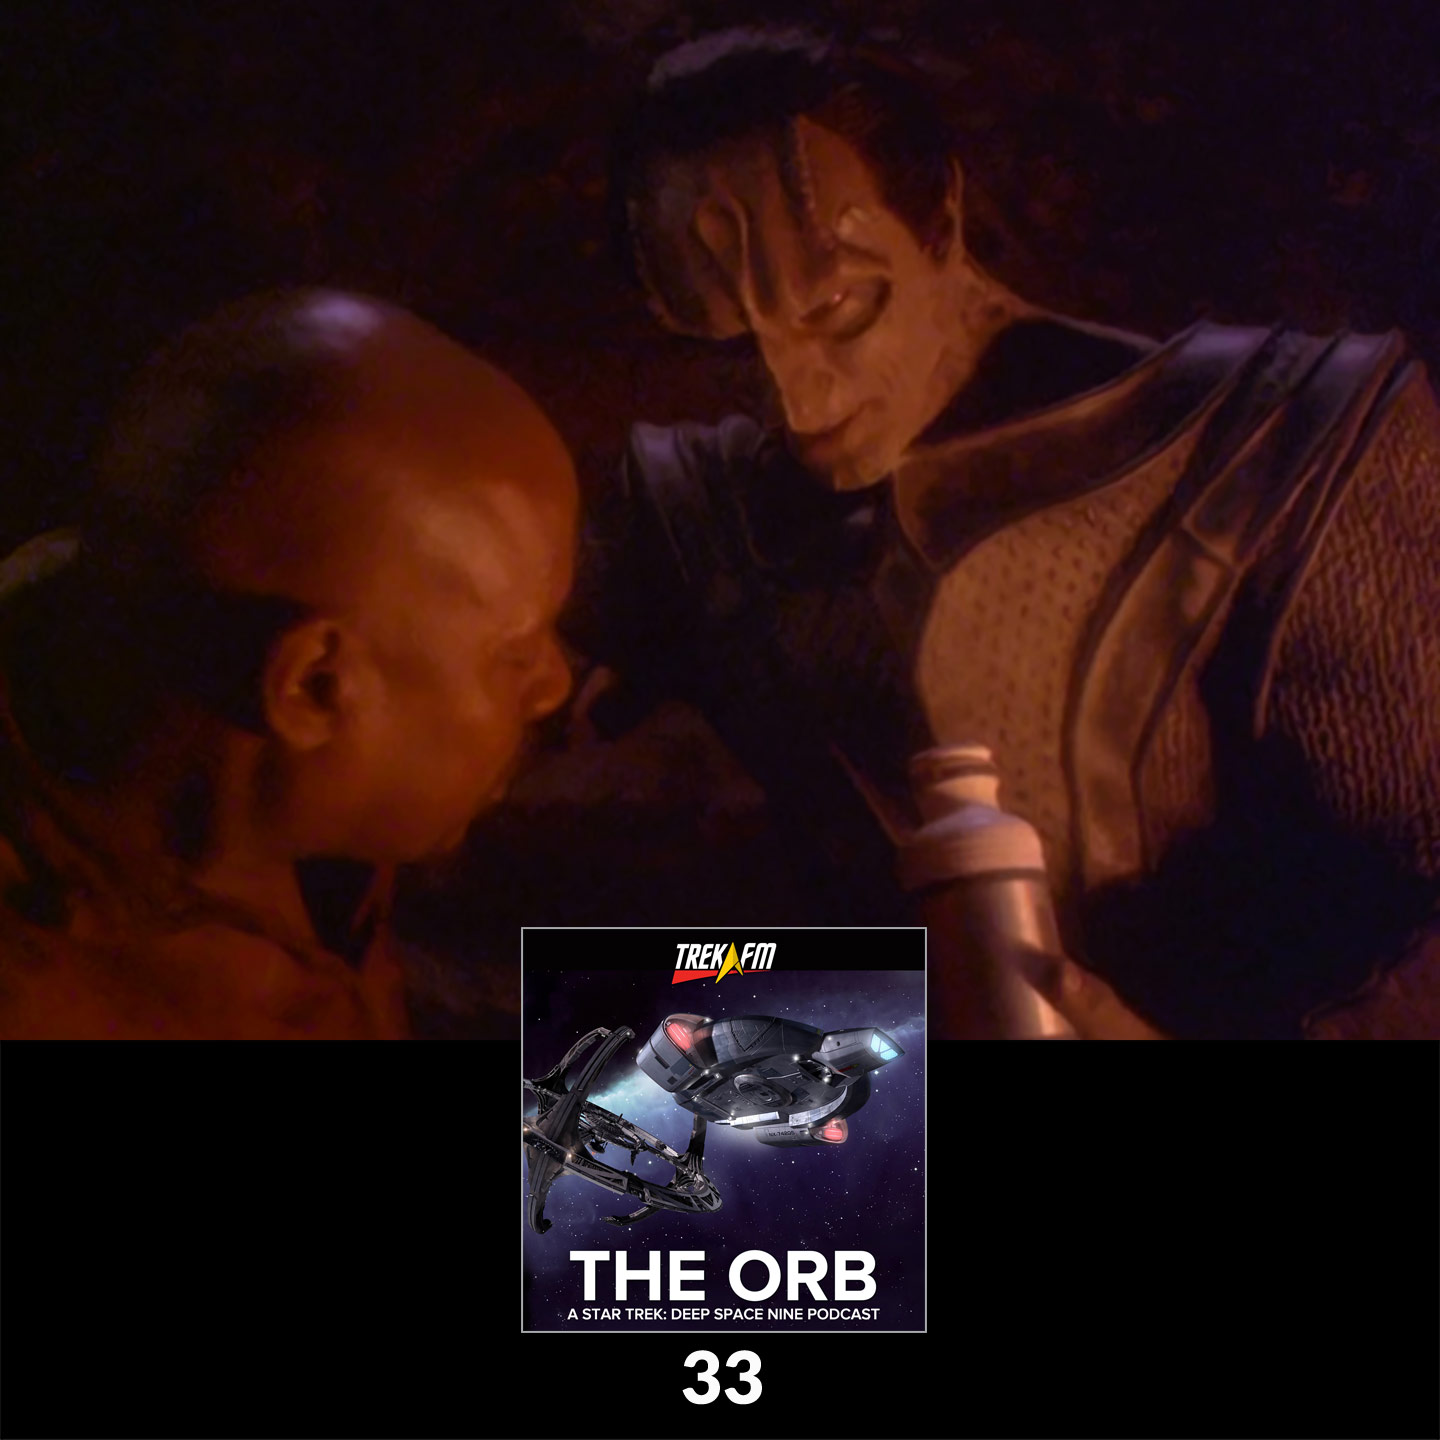 The Orb 33: Techniques of Neutralization